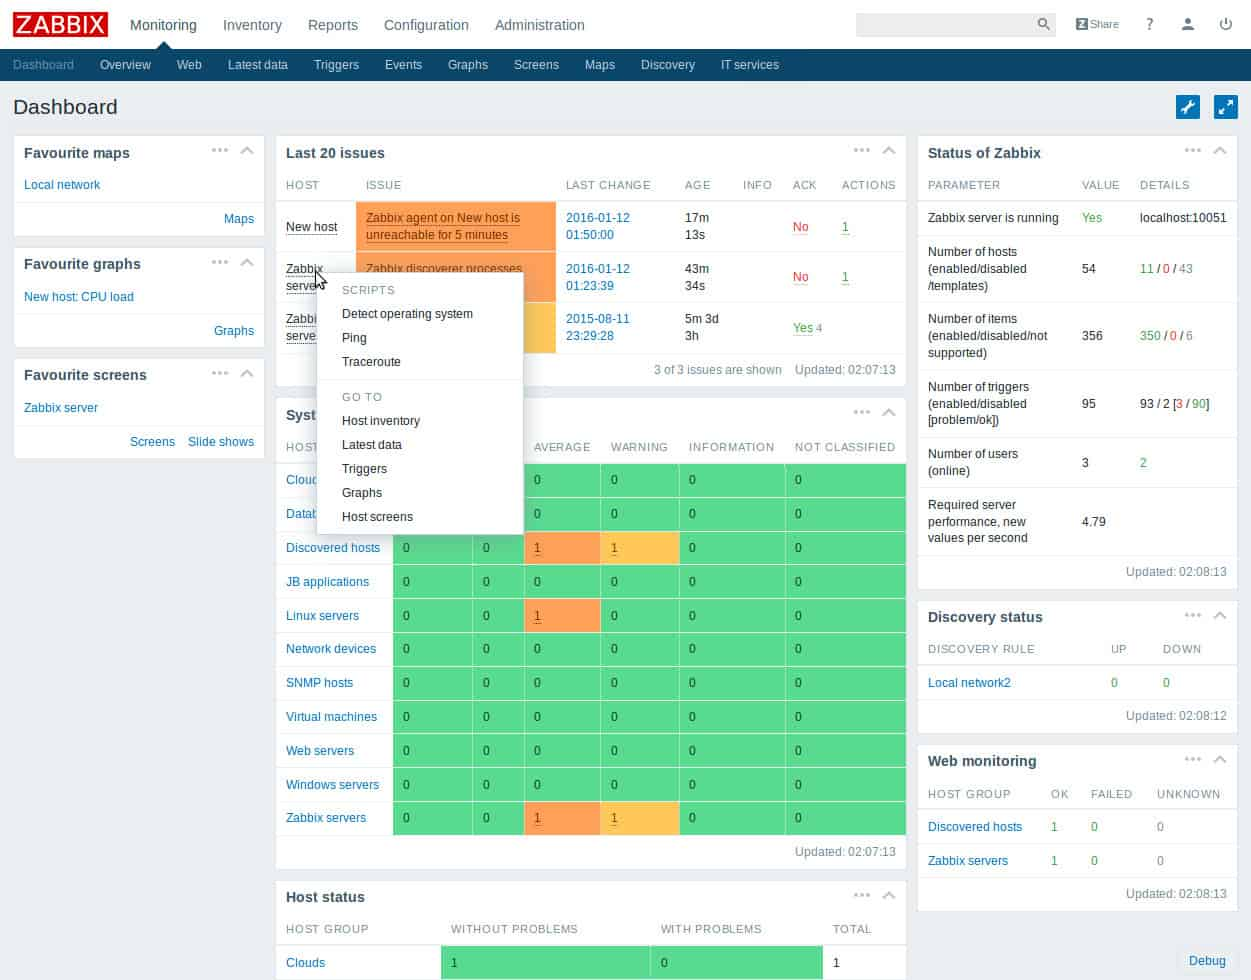 7 Best Cisco Network Monitoring Tools - Comparitech